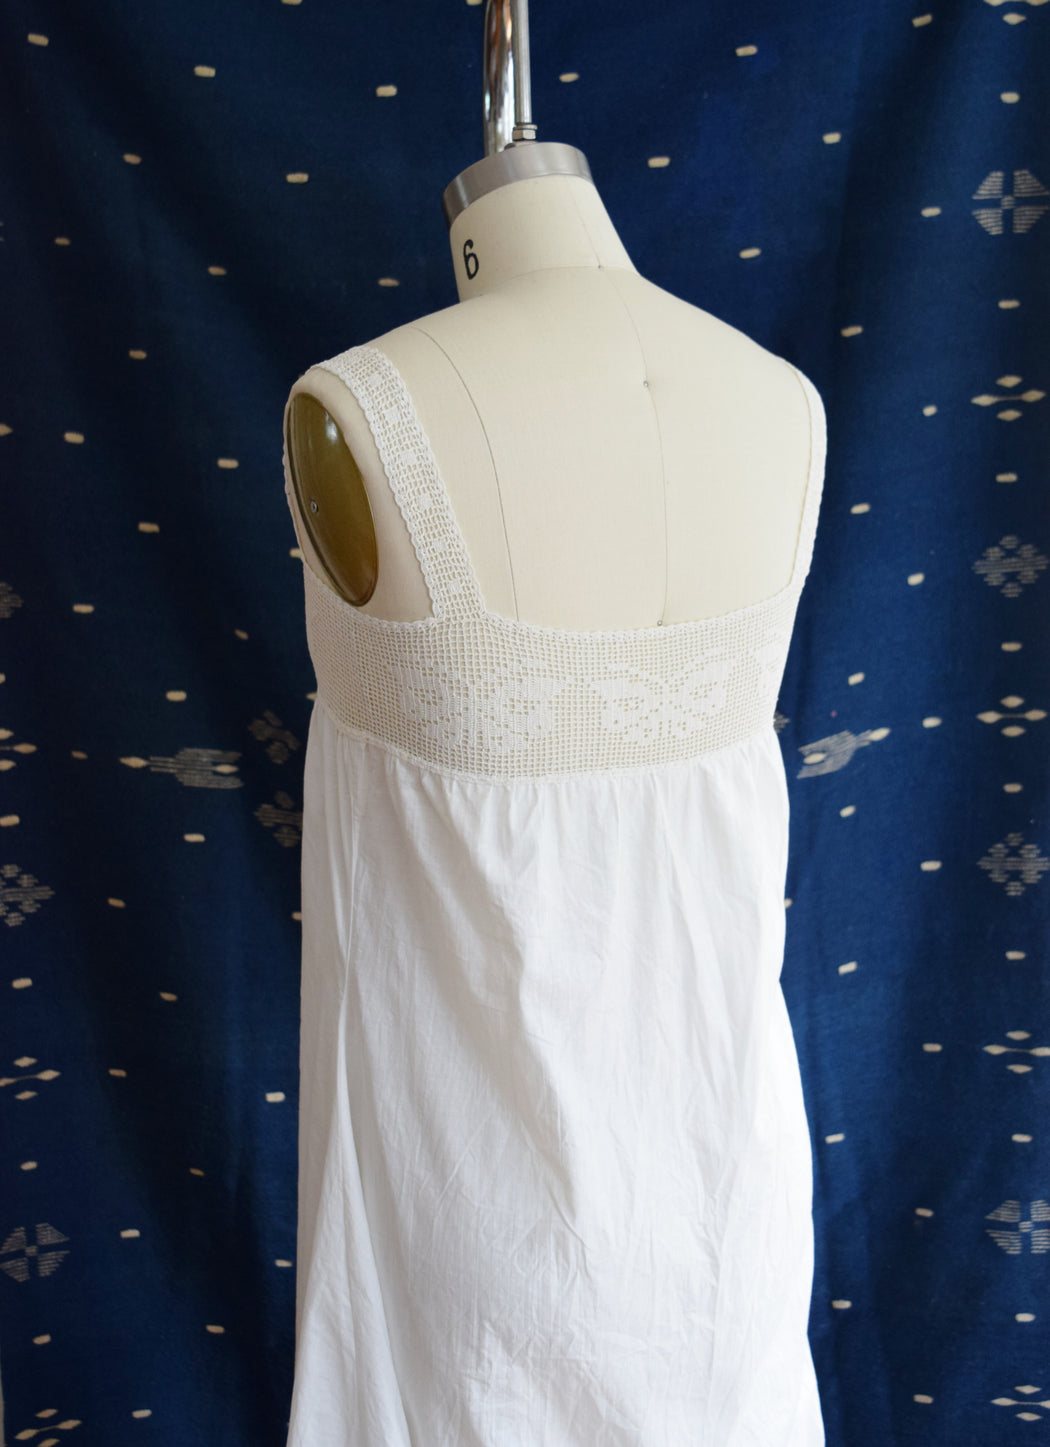 Antique Butterfly Crochet and Cotton Camisole Dress | Undergarment